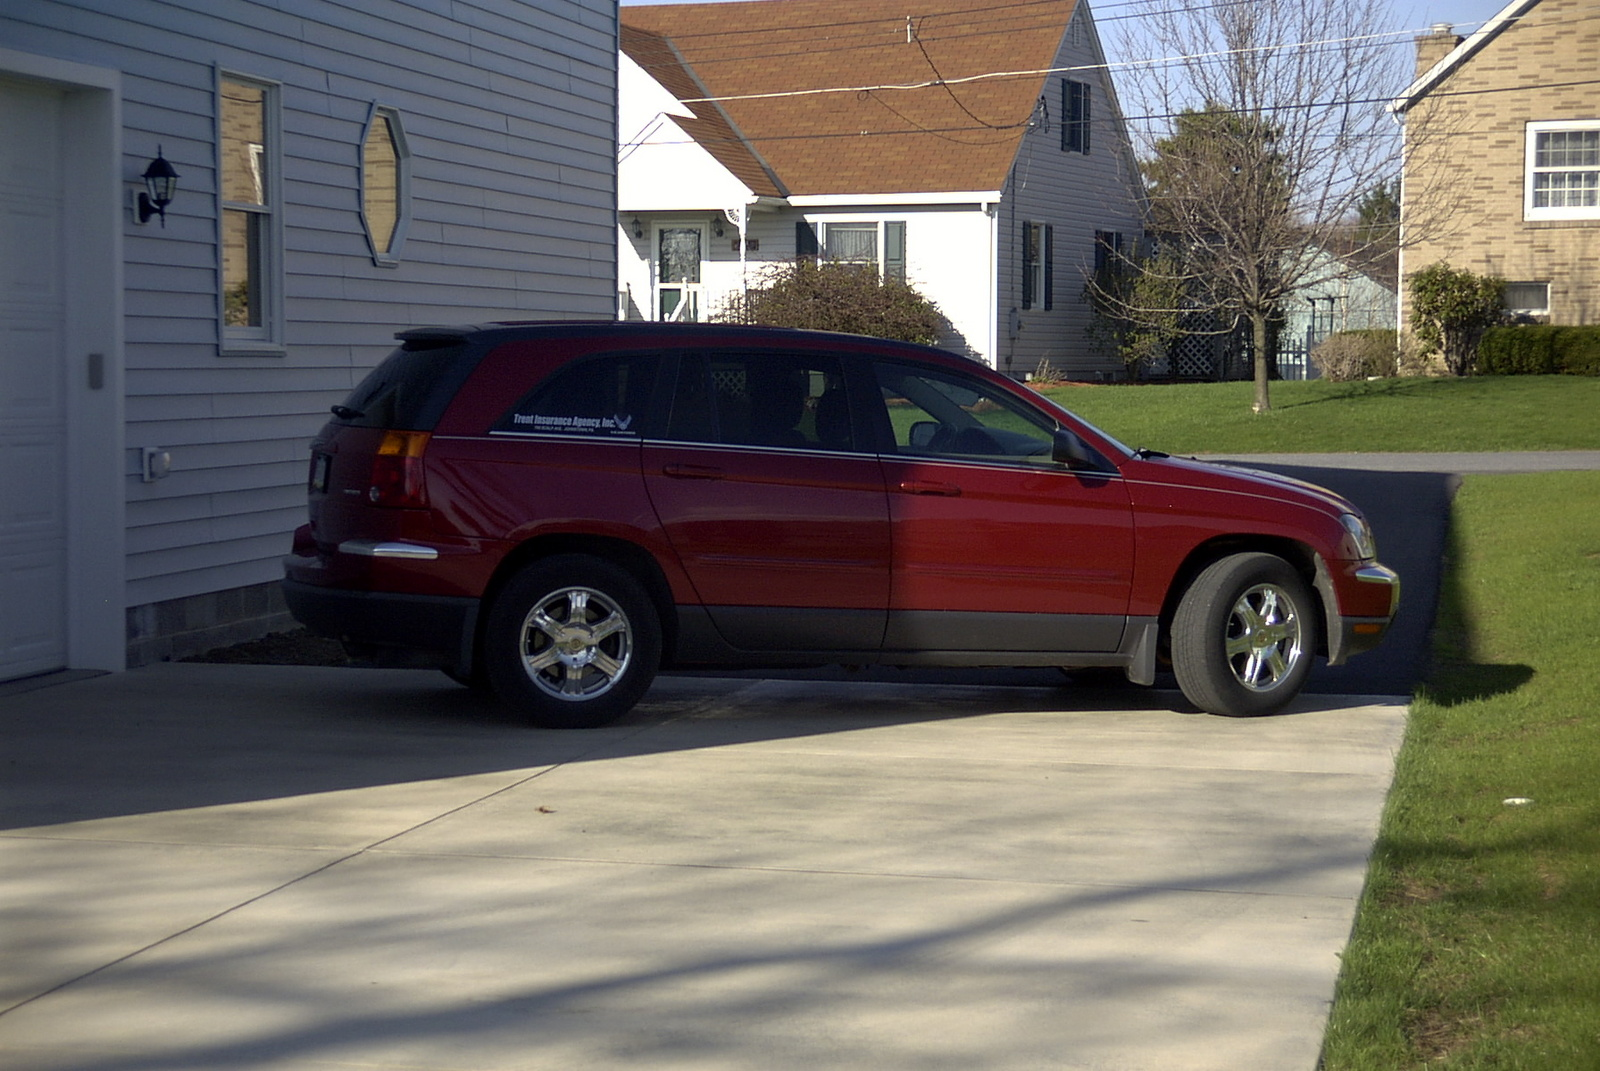 2004 Chrysler Pacifica - Pictures - 2004 Chrysler Pacifica Base AW ...